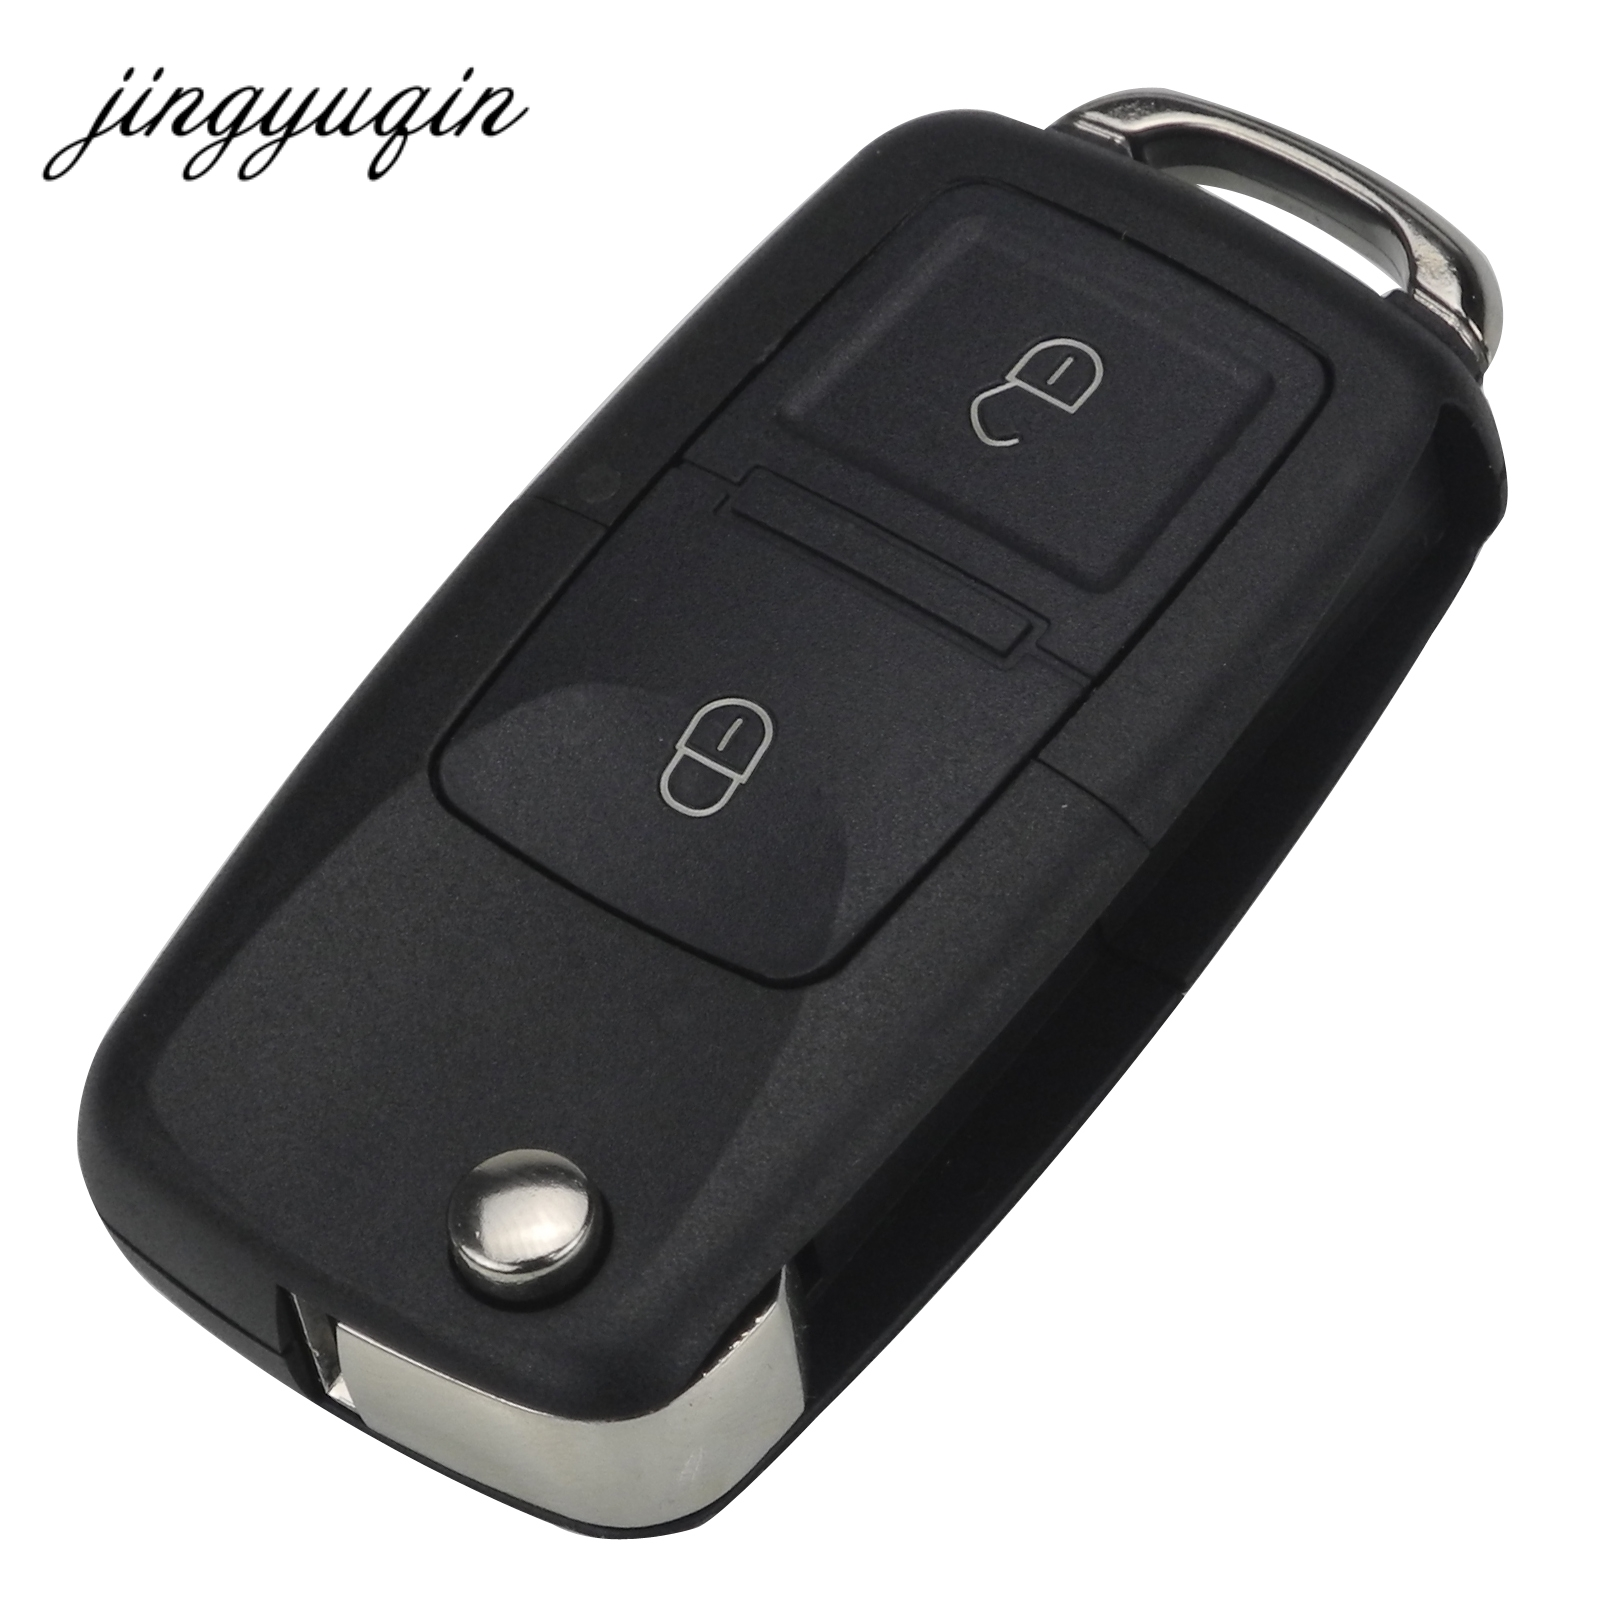 jingyuqin No Blade 2/3 Button Remote Flip Folding Car Key Shell for VW MK4 Bora Golf 4 5 6 Passat Polo Bora Touran воздушный фильтр 1j0201801h vw bora mk4